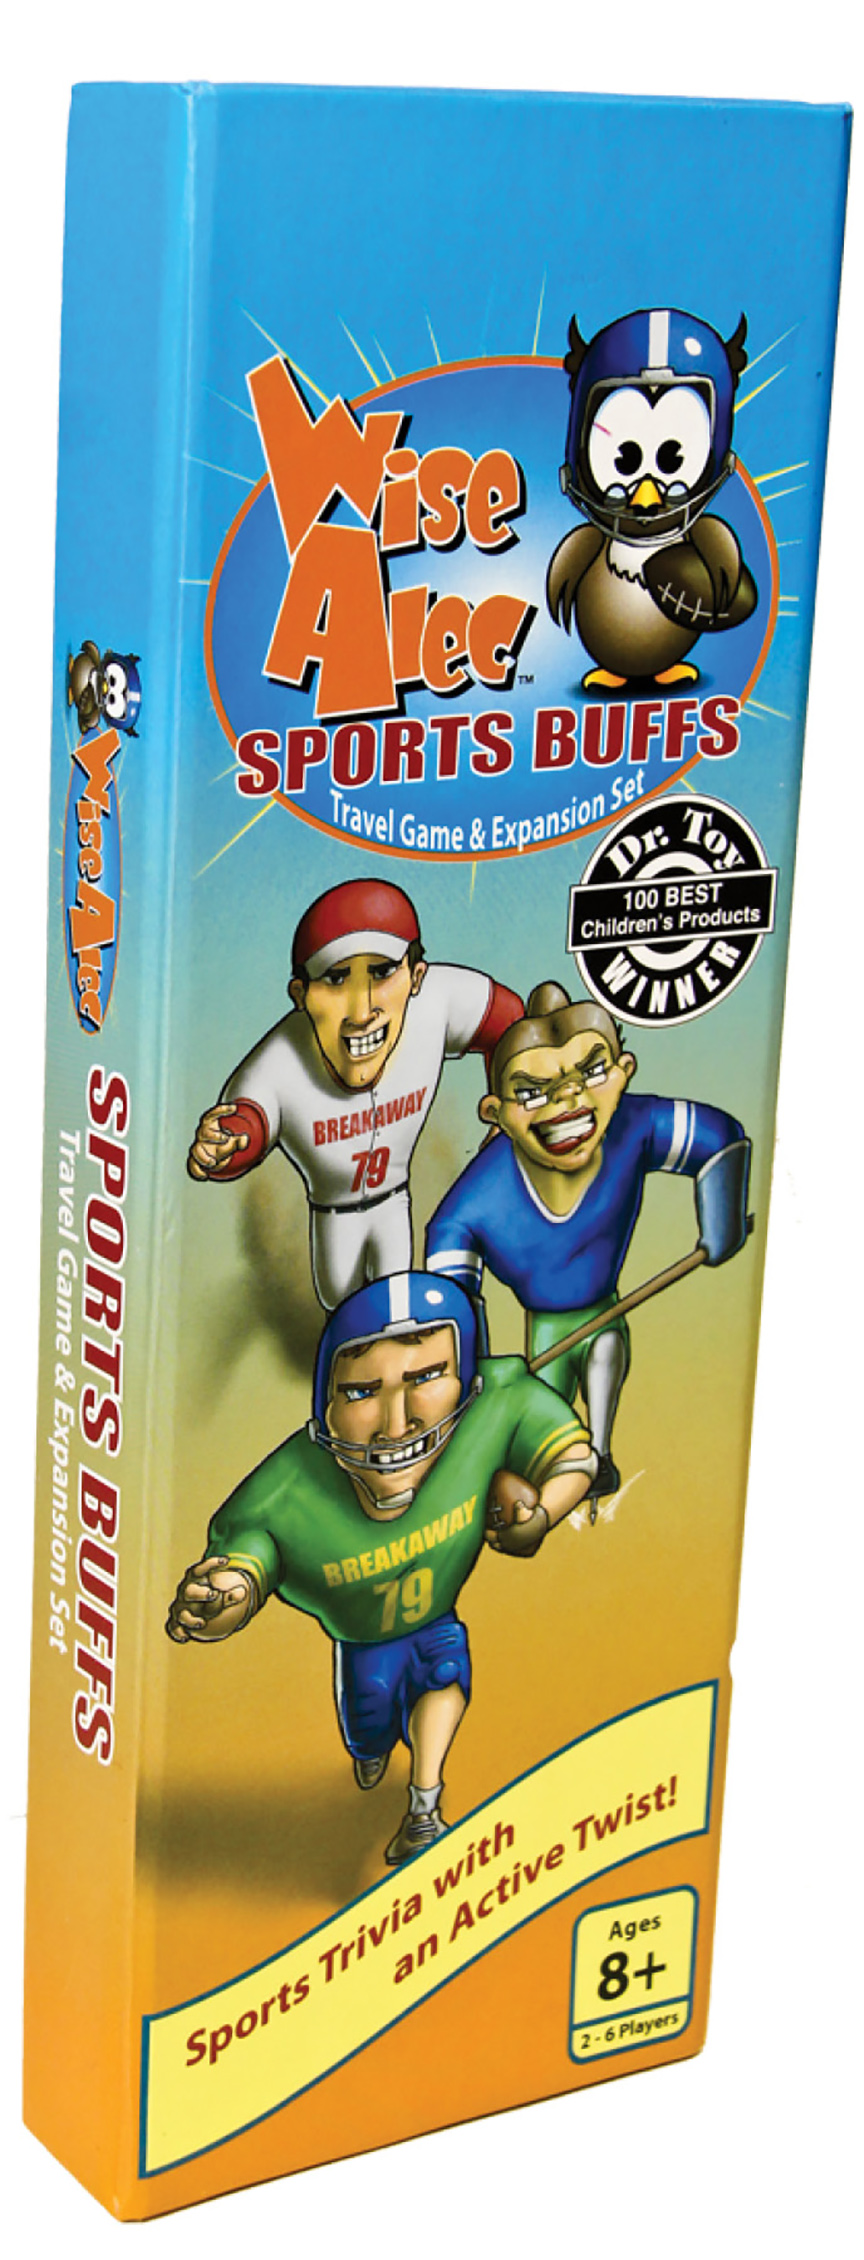 Wise Alec Sports Buffs packaging